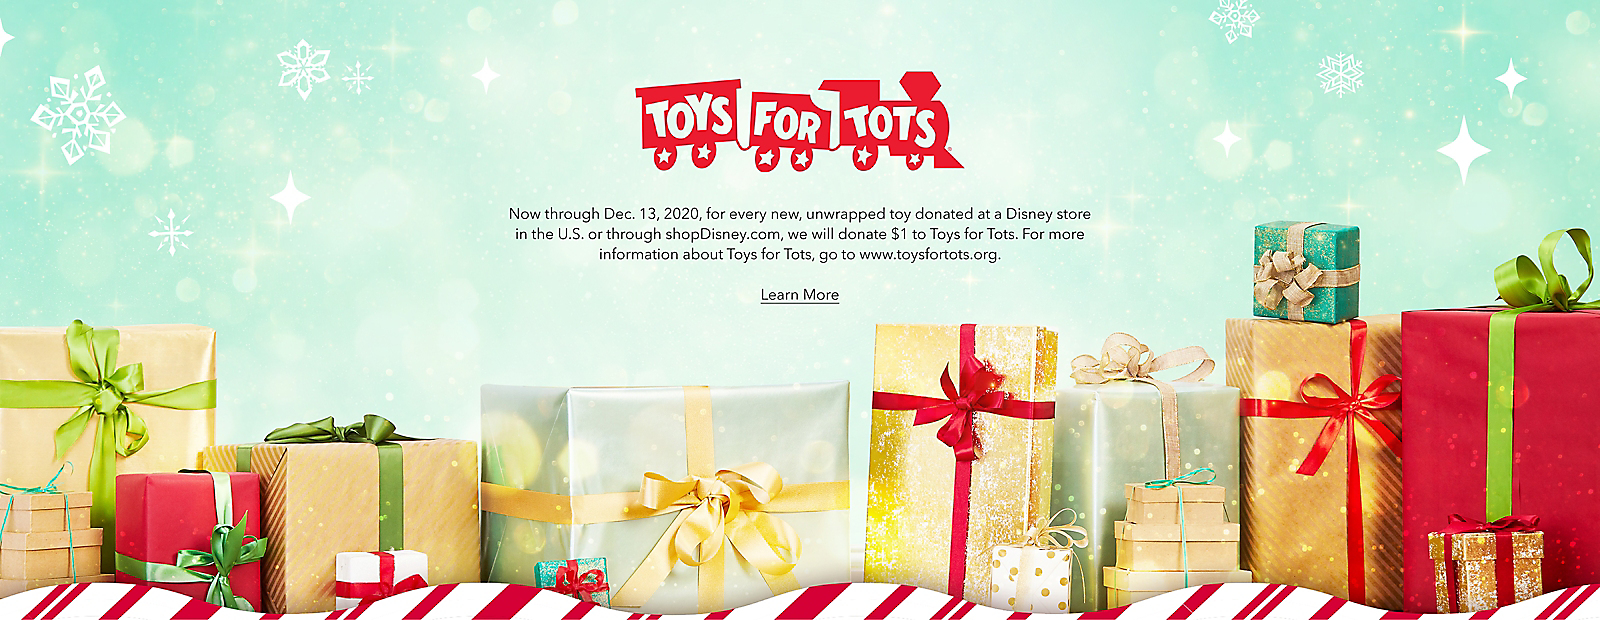 Now through Dec. 13, 2020, for every new, unwrapped toy donated at a Disney store in the U.S. or through shopDisney.com, we will donate $1 to Toys for Tots. For more information about Toys for Tots, go to www.toysfortots.org. Learn More